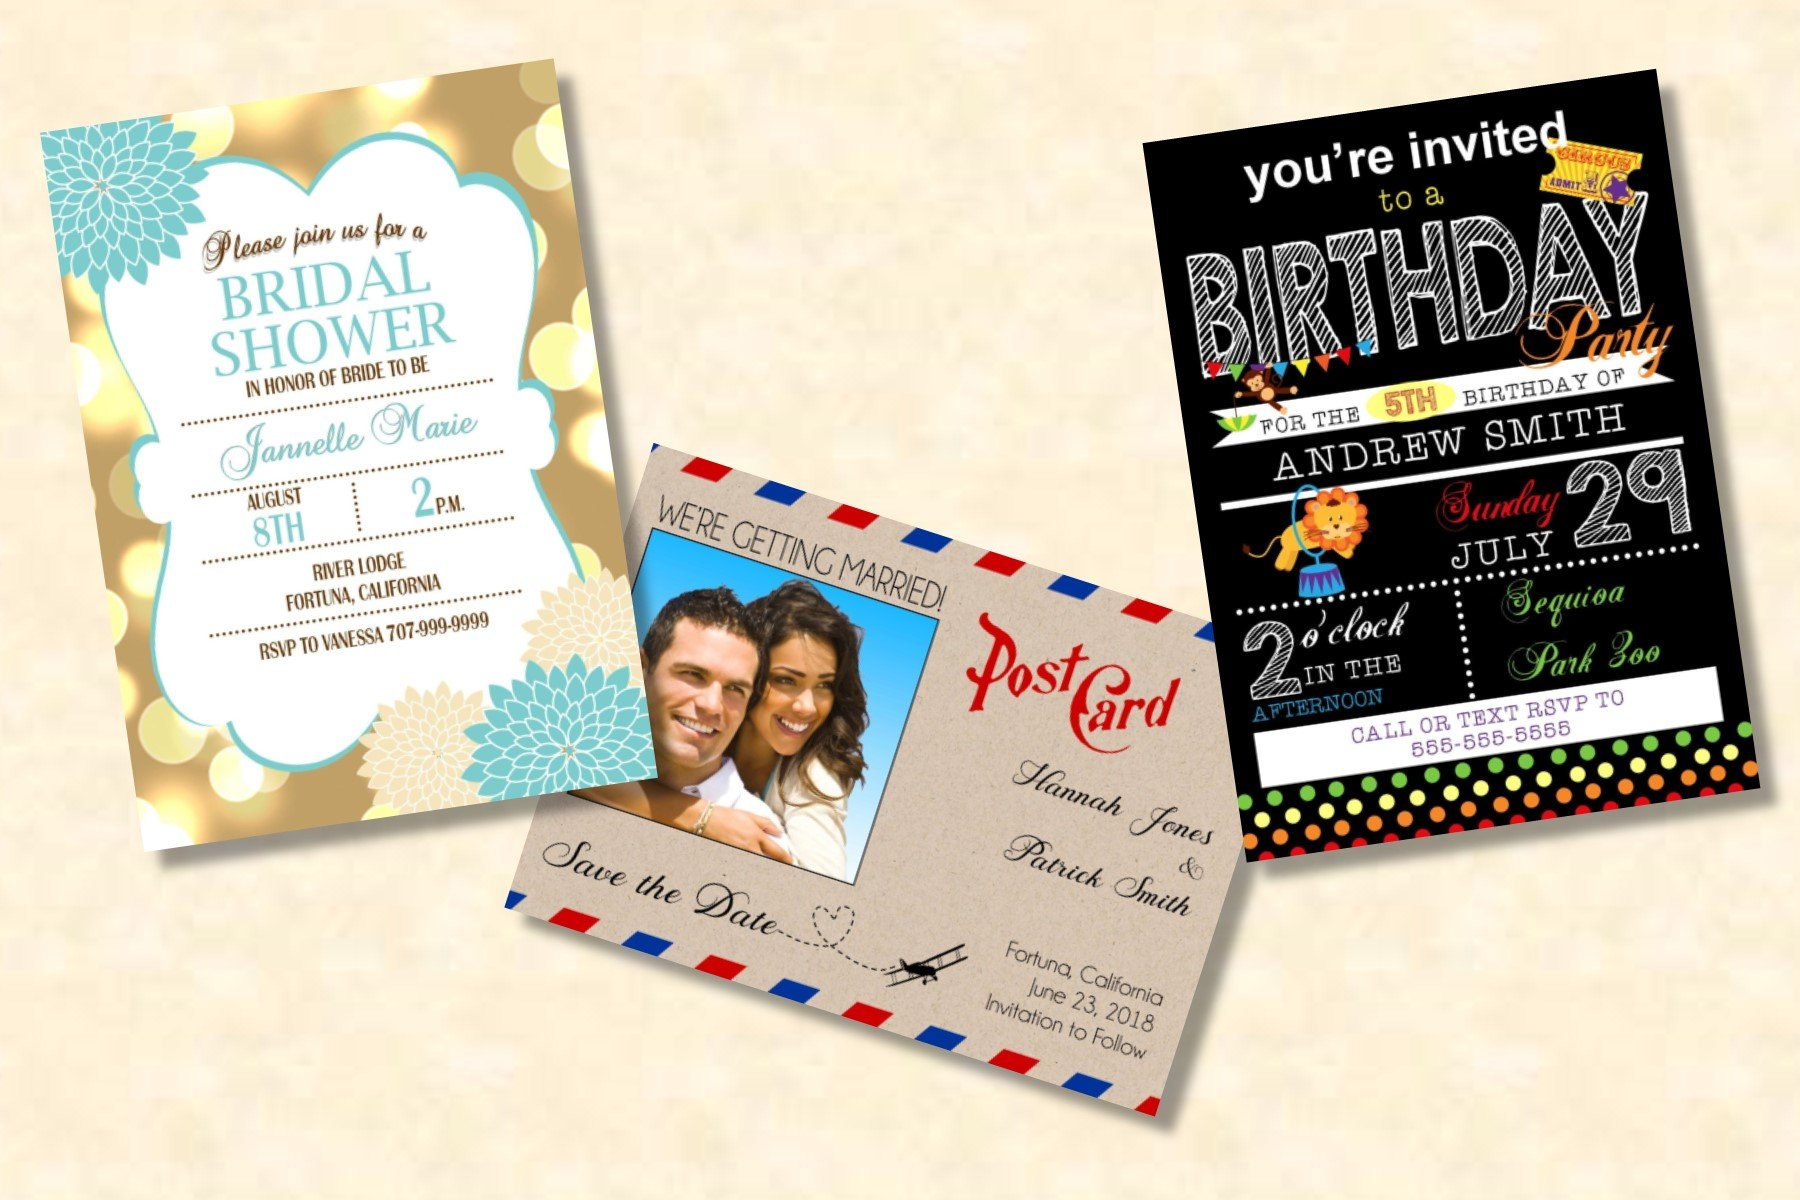 Postcard & Invitation Black Printing Options Full Bleed Pricing 5x7